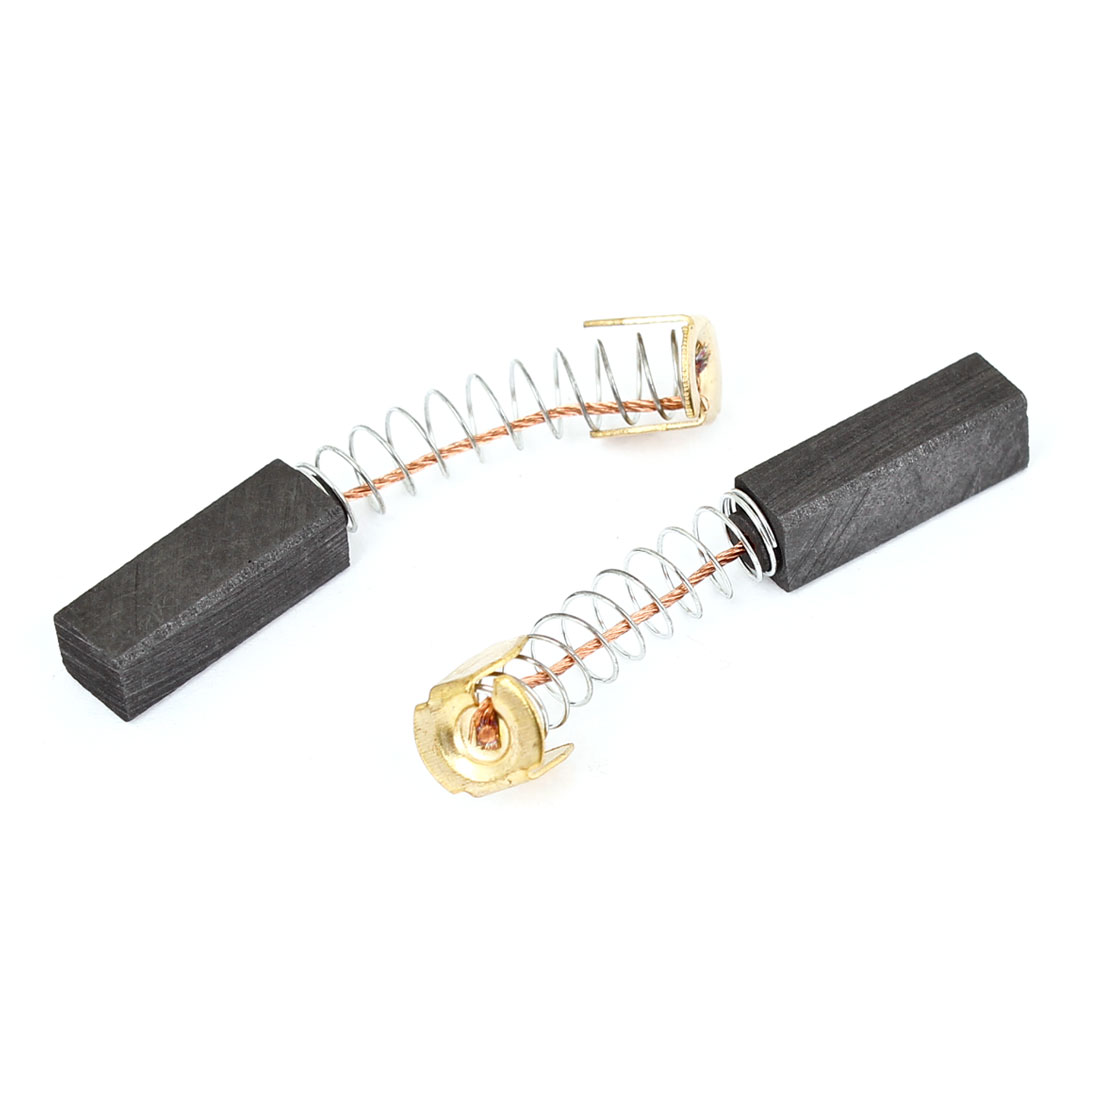 19mm x 6.9mm x 5.9mm Carbon Brushes for Generic Electric Motor 2 Pcs